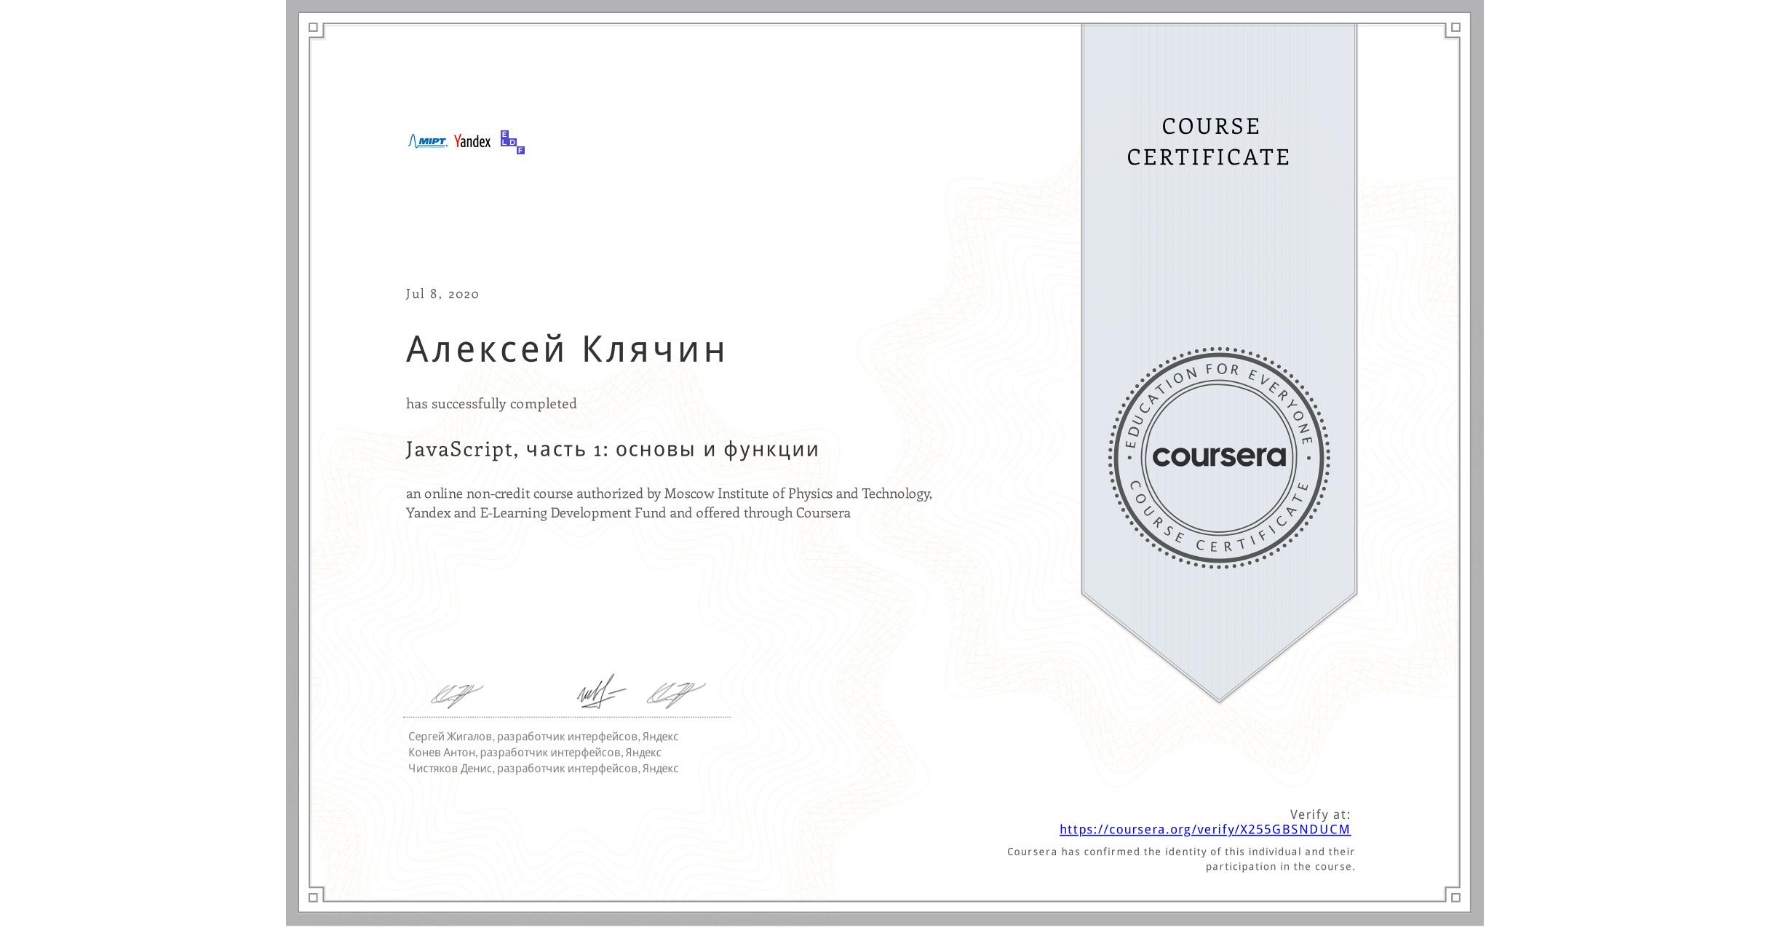 View certificate for Алексей Клячин, JavaScript, часть 1: основы и функции, an online non-credit course authorized by Moscow Institute of Physics and Technology, Yandex & E-Learning Development Fund and offered through Coursera